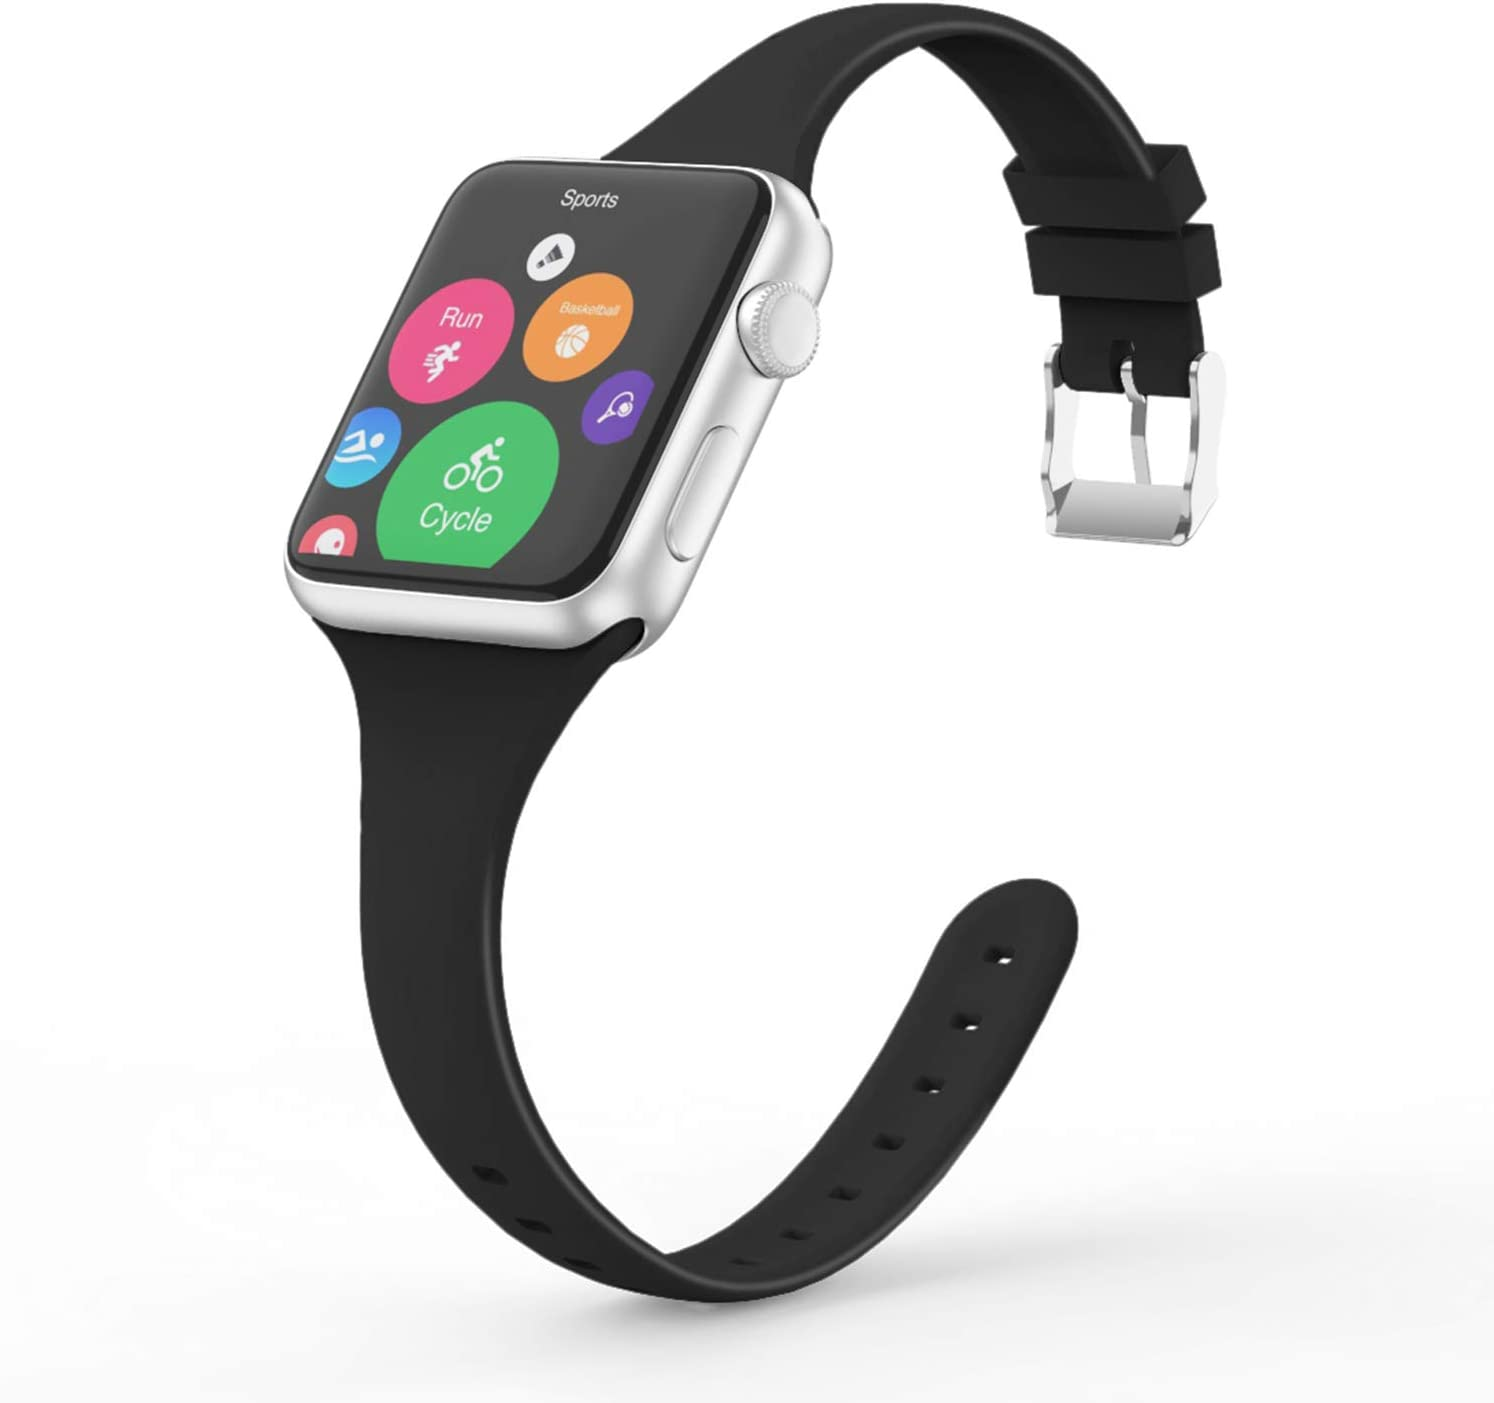 Vinyl Etchings Slim Band Compatible with Apple Watch 40mm 38mm 44mm 42mm for Women Men, Thin Narrow Replacement Soft Silicone Sport Strap for iWatch Series 6 5 4 3 2 1 SE (Black, 42/44MM)